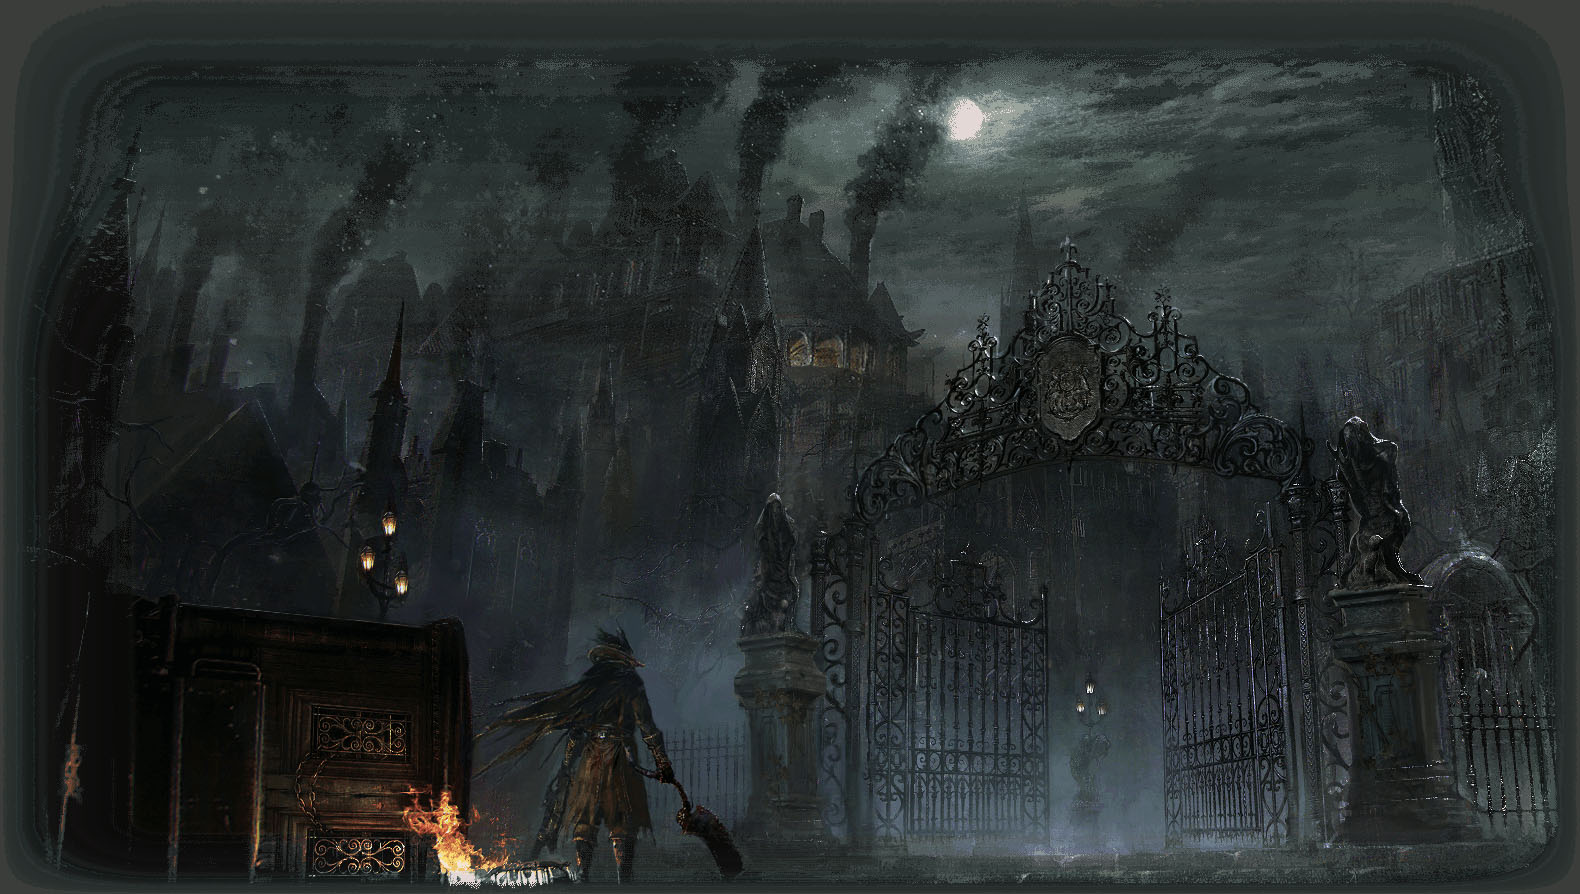 Ps4 Exclusive Bloodborne New Artwork Leaked Show Lead